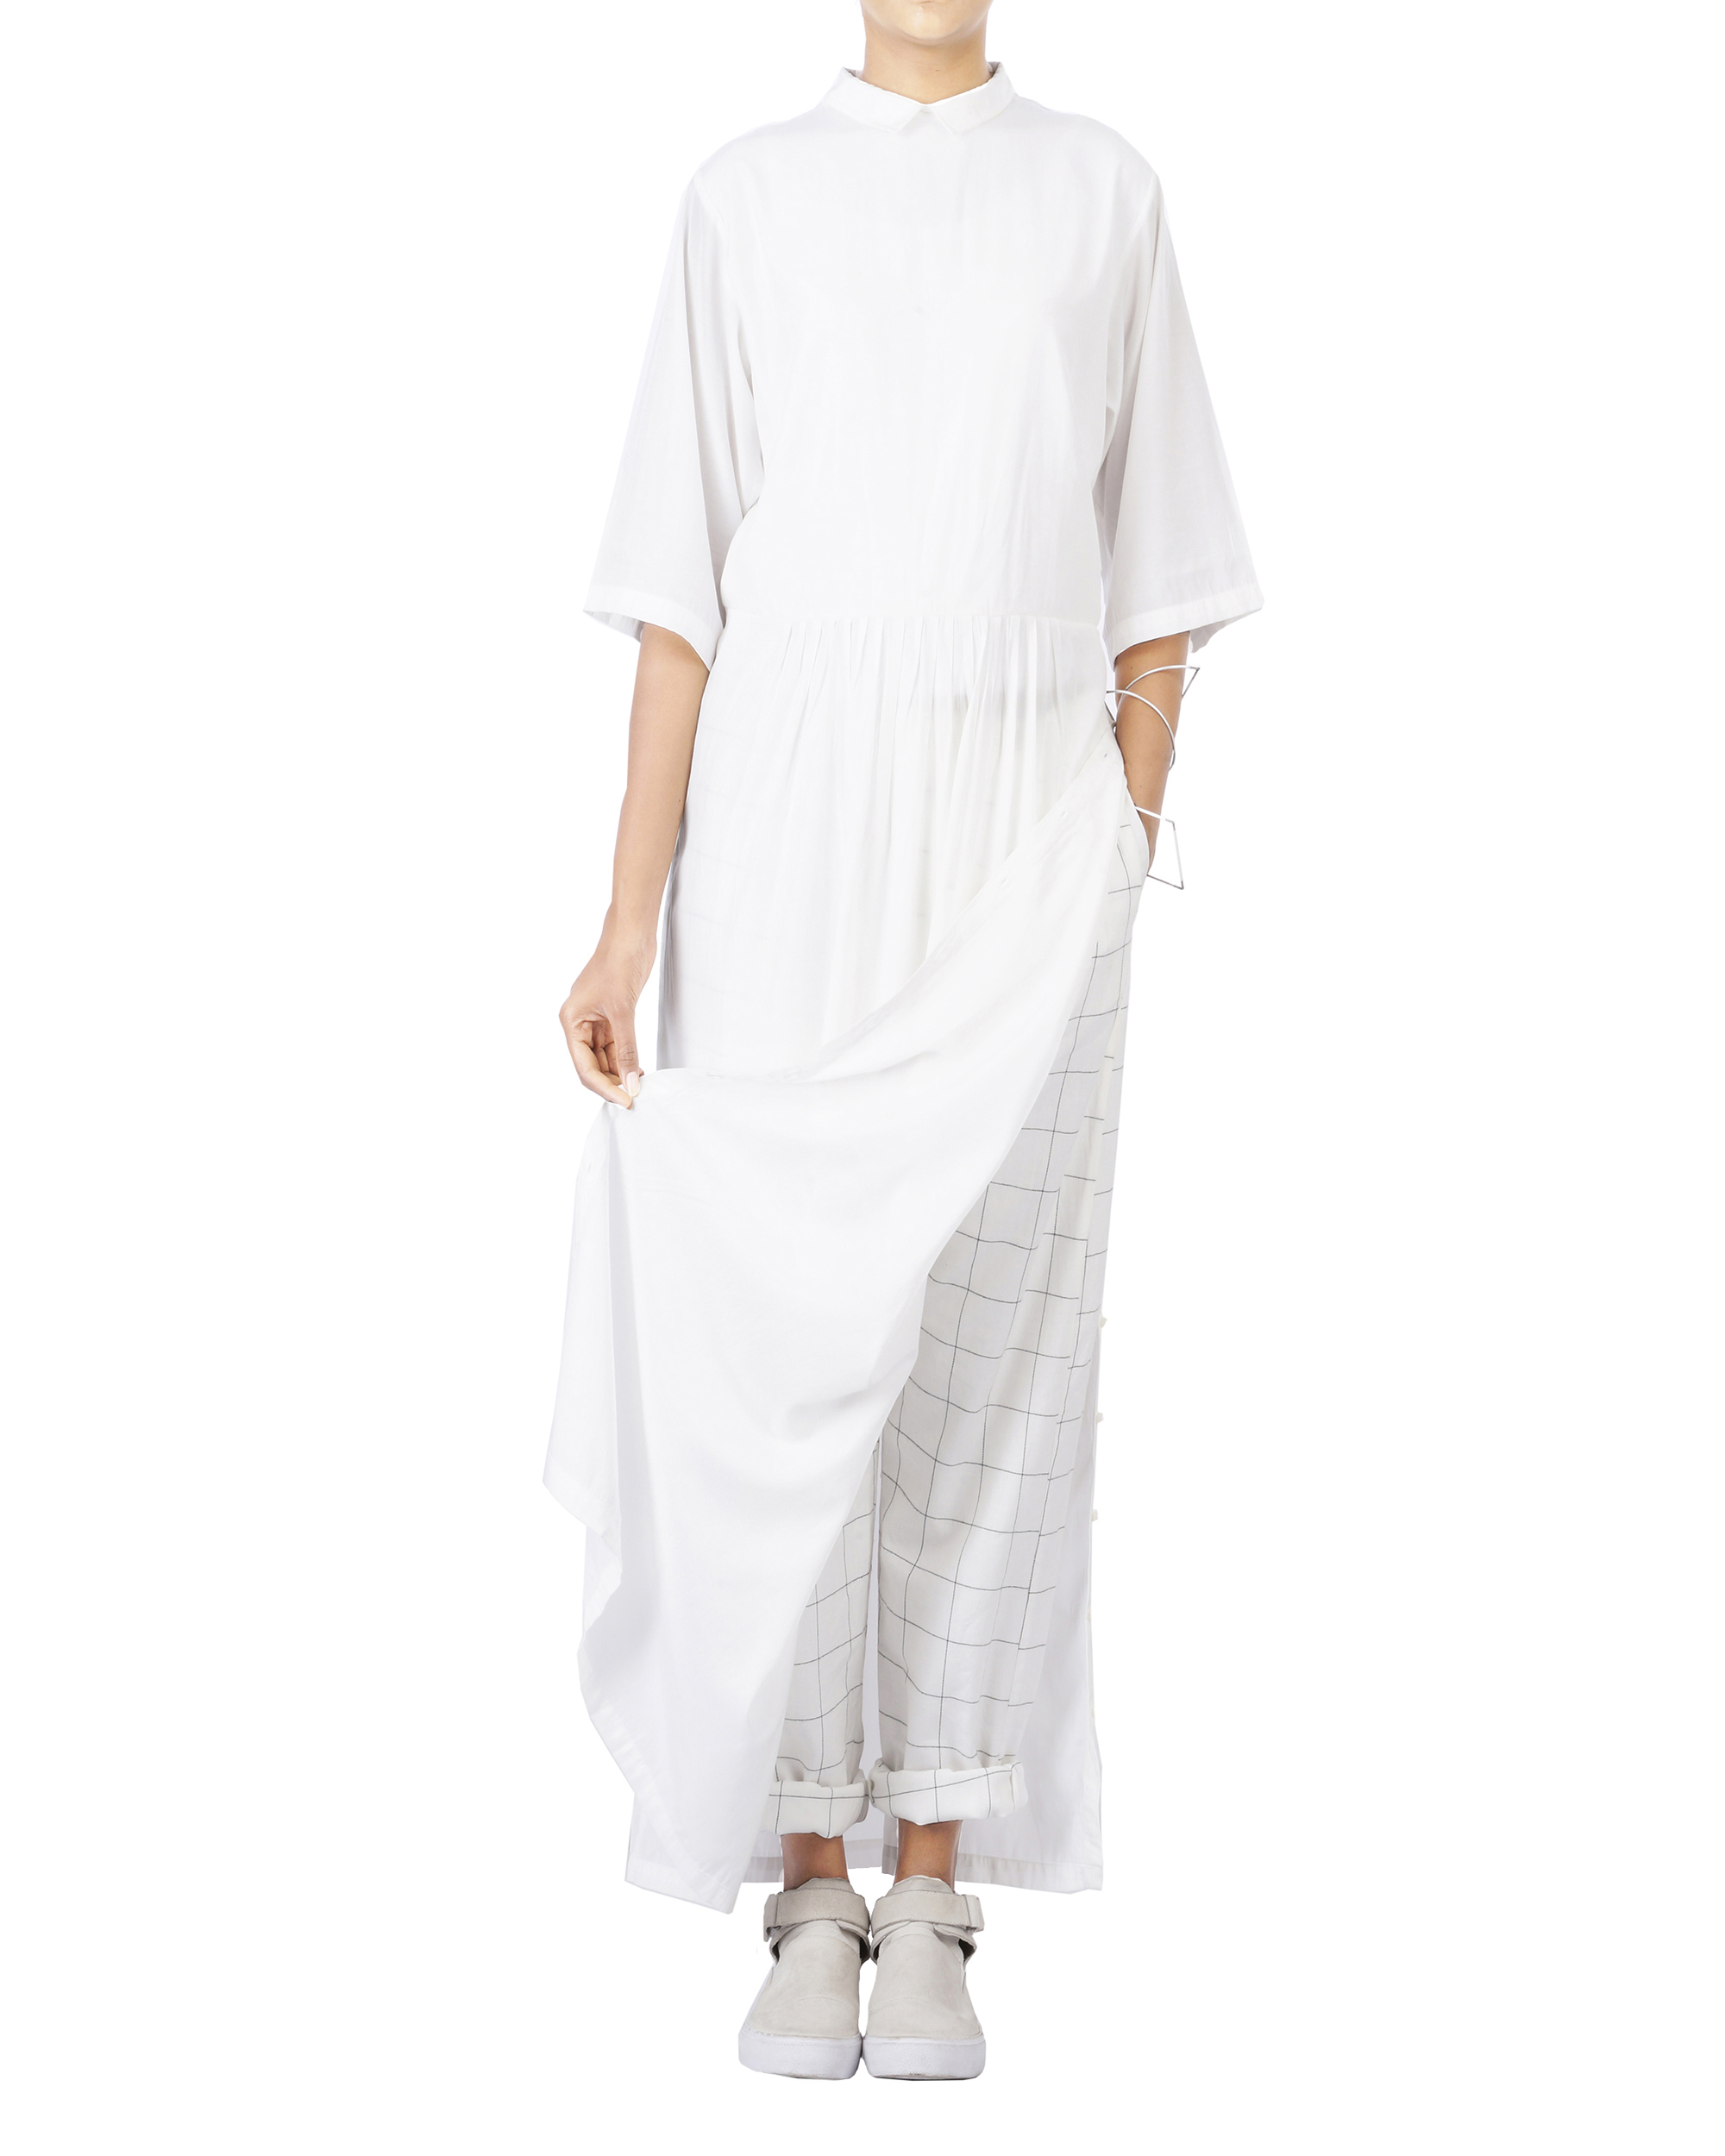 White dropped waist dress with side button opening